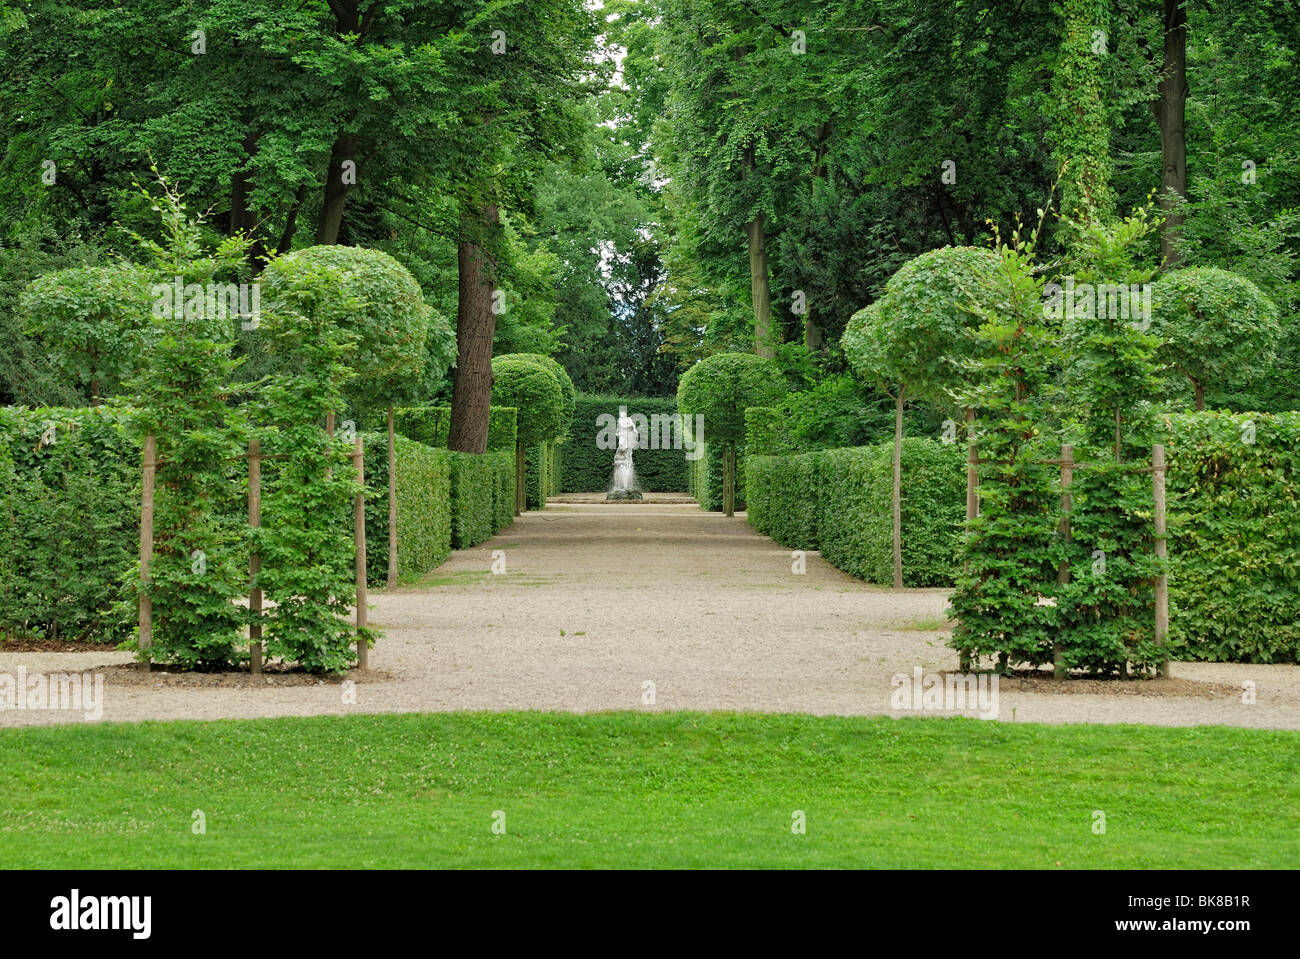 Hedges and trees clipped in form, baroque garden, Schloss Schwetzingen Castle, Baden-Wuerttemberg, Germany, Europe - Stock Image